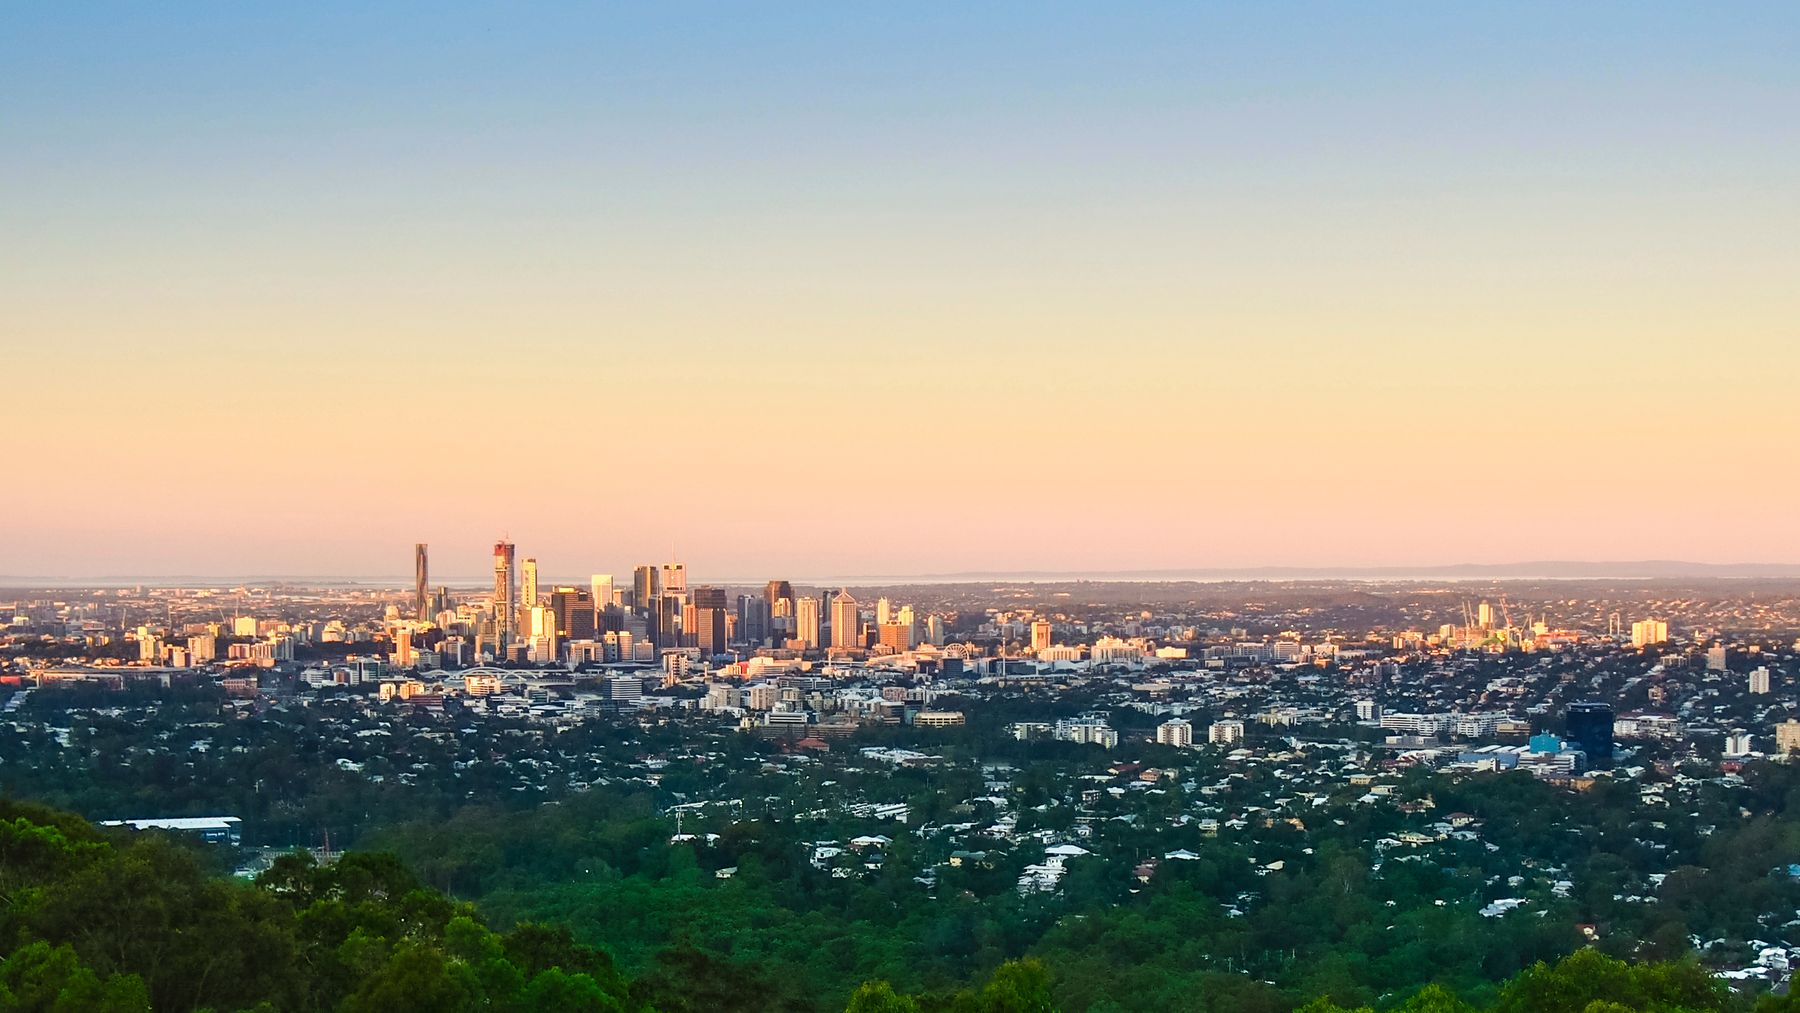 Climbing Brisbane's Mount Coot-tha gives great views over the city